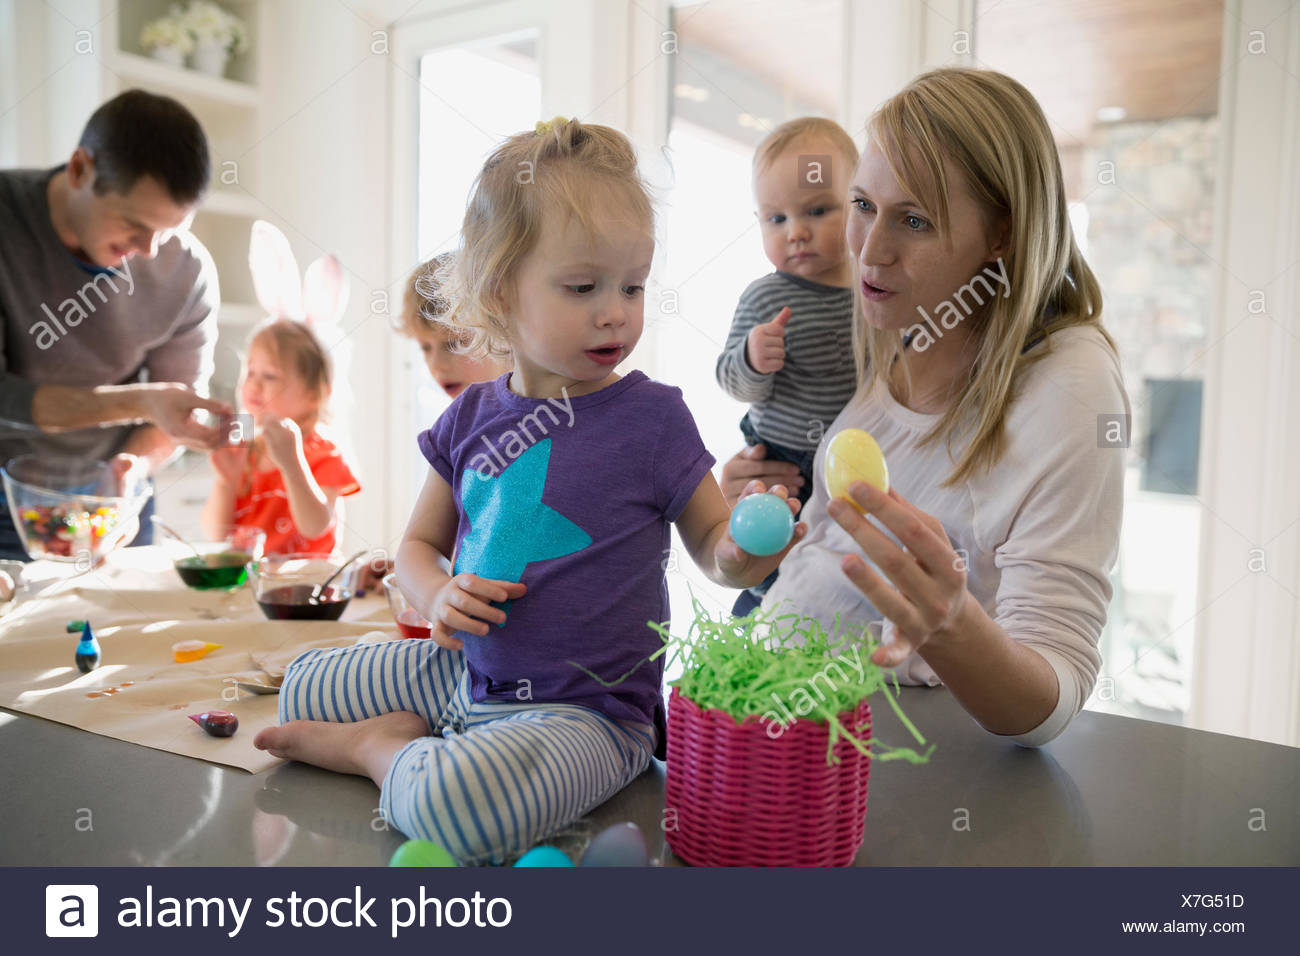 Mother and daughter with plastic Easter eggs - Stock Image